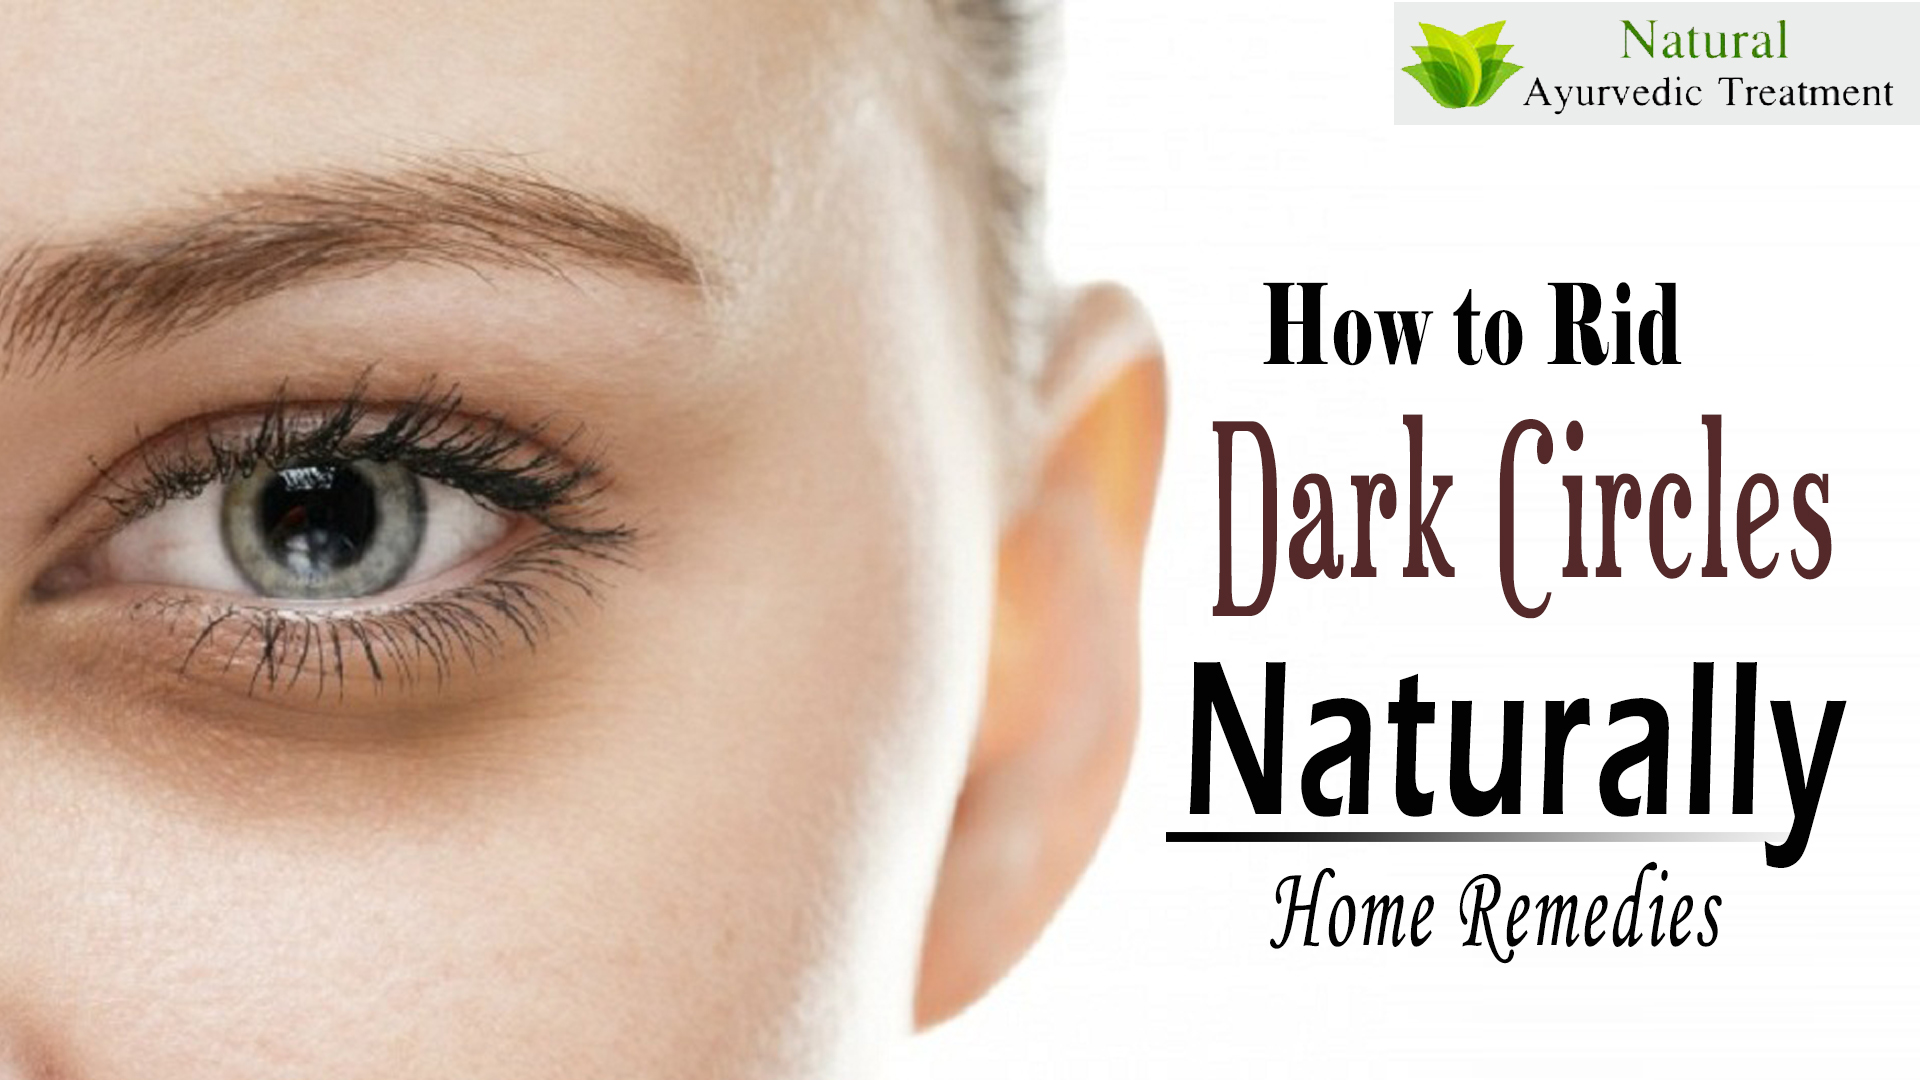 What are The Home Remedies to Get Your Dark Circles Removed?